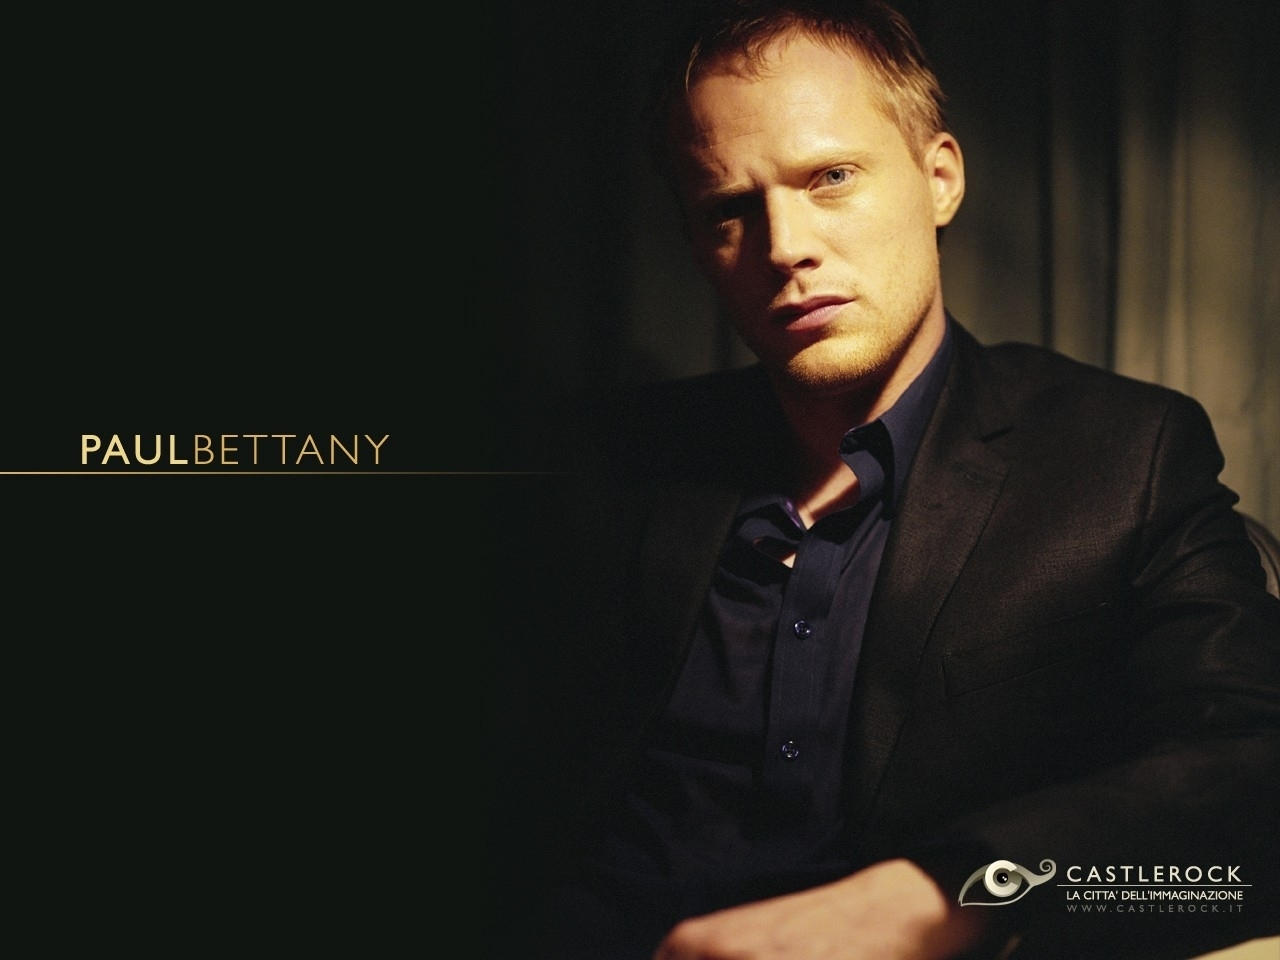 Paul Bettany Wallpapers Images Photos Pictures Backgrounds Emmy Rossum Wallpaper